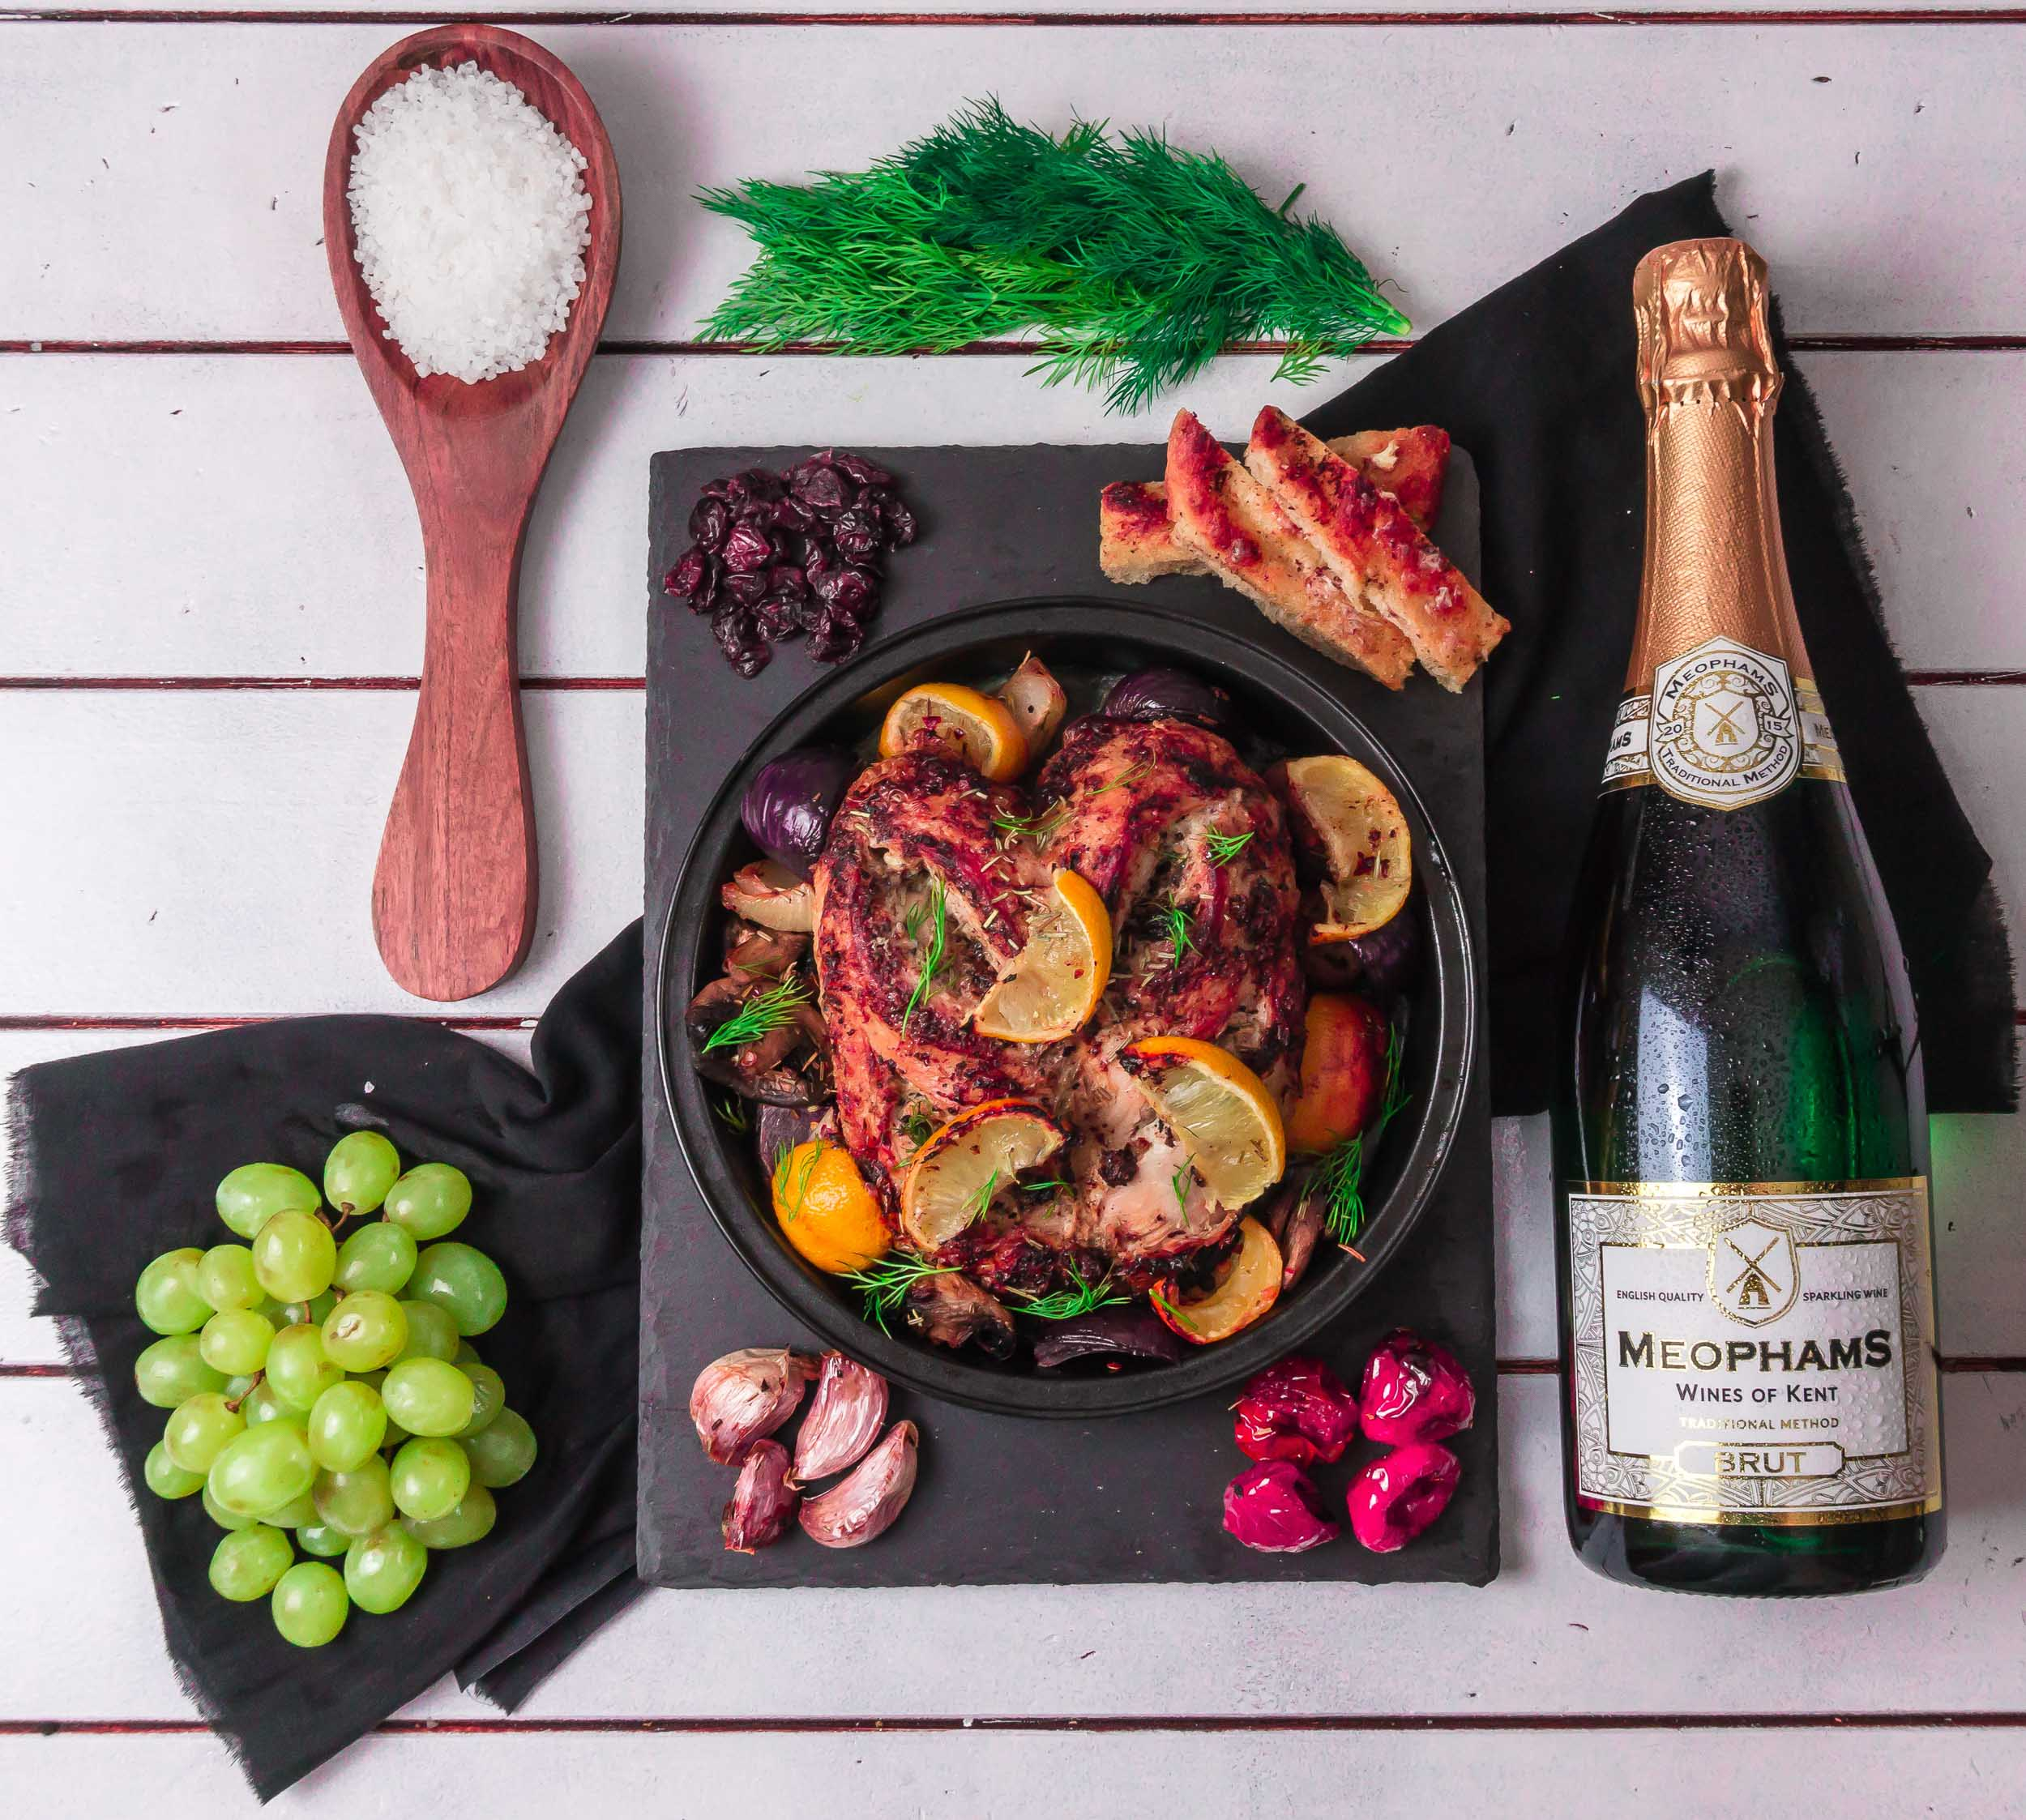 Meophams-Brut-English-Sparkling-Wine-Roast-Chicken-1